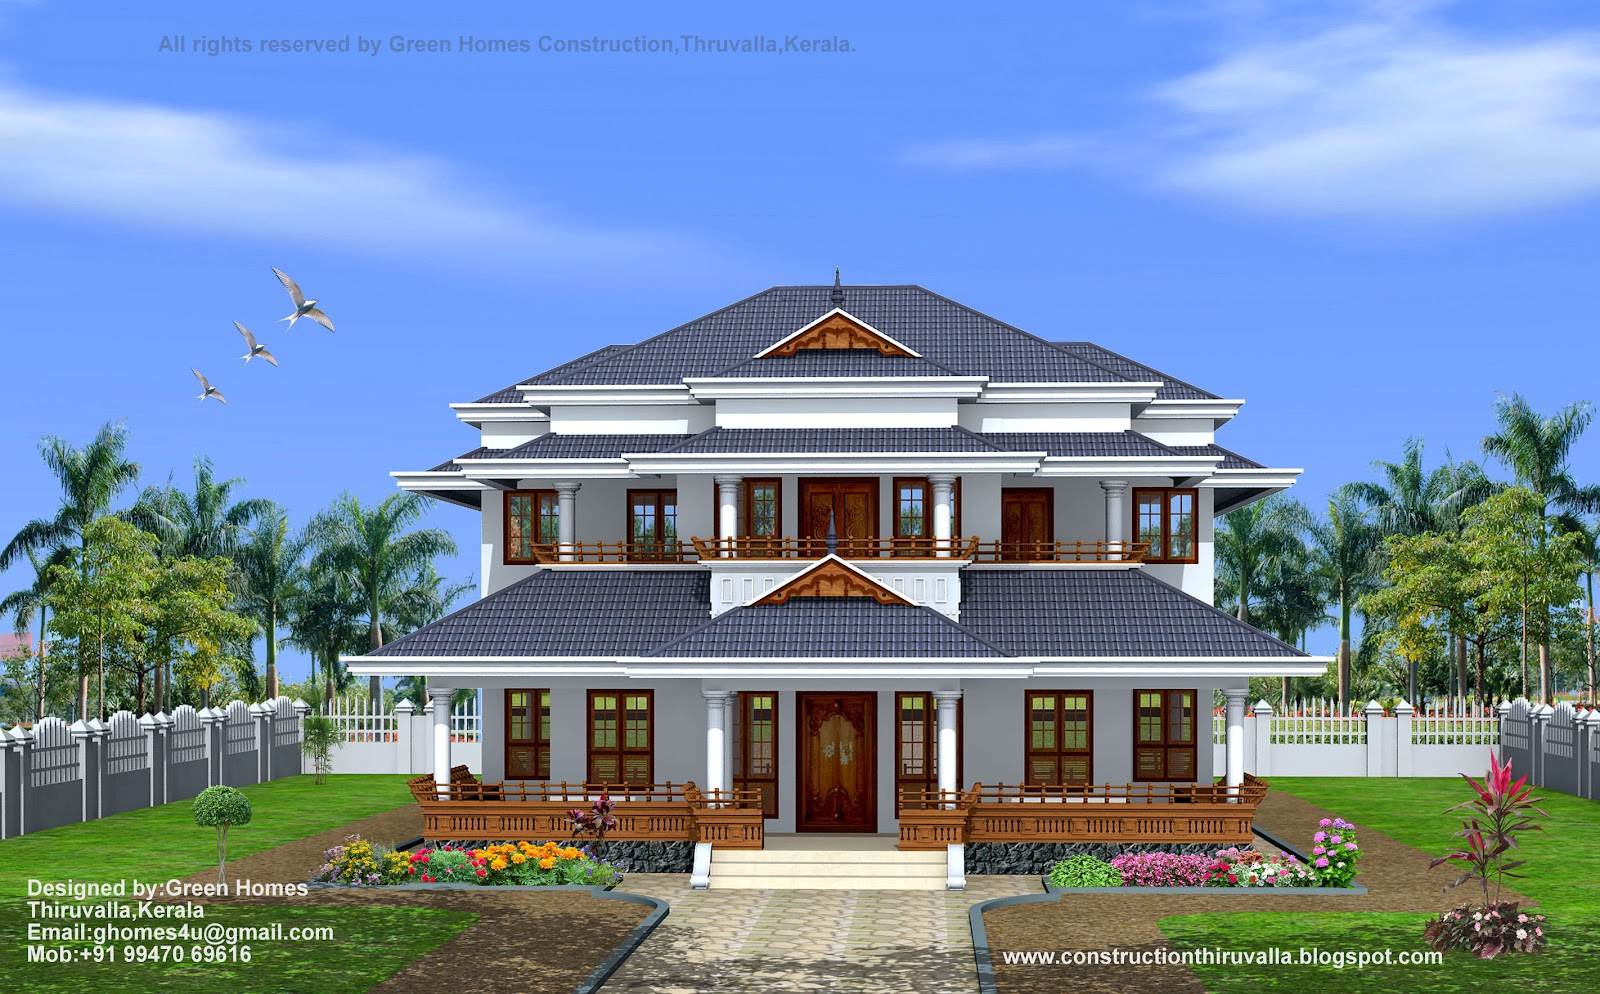 Green homes traditional style kerala home design 3450 sq feet for Home designs kerala style